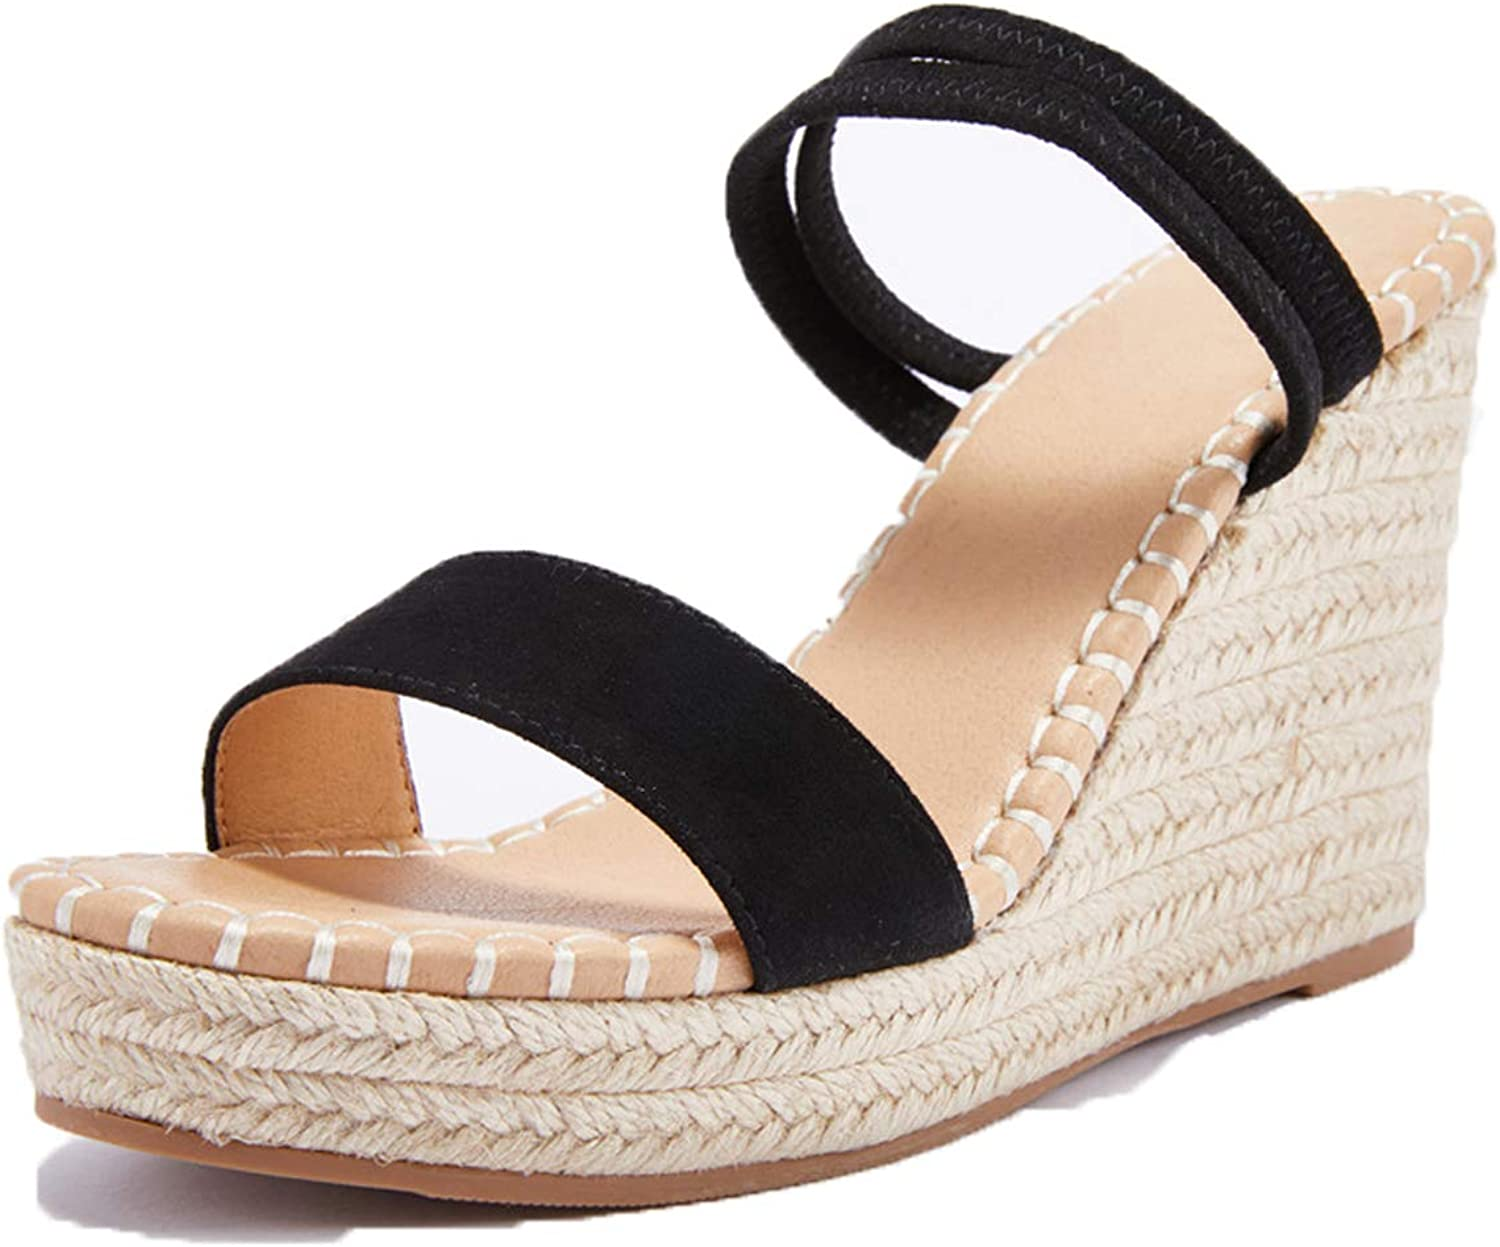 VETASTE Women's Ankle Strap Wedge Open Super sale Ranking TOP12 period limited Toe Strappy Sandal